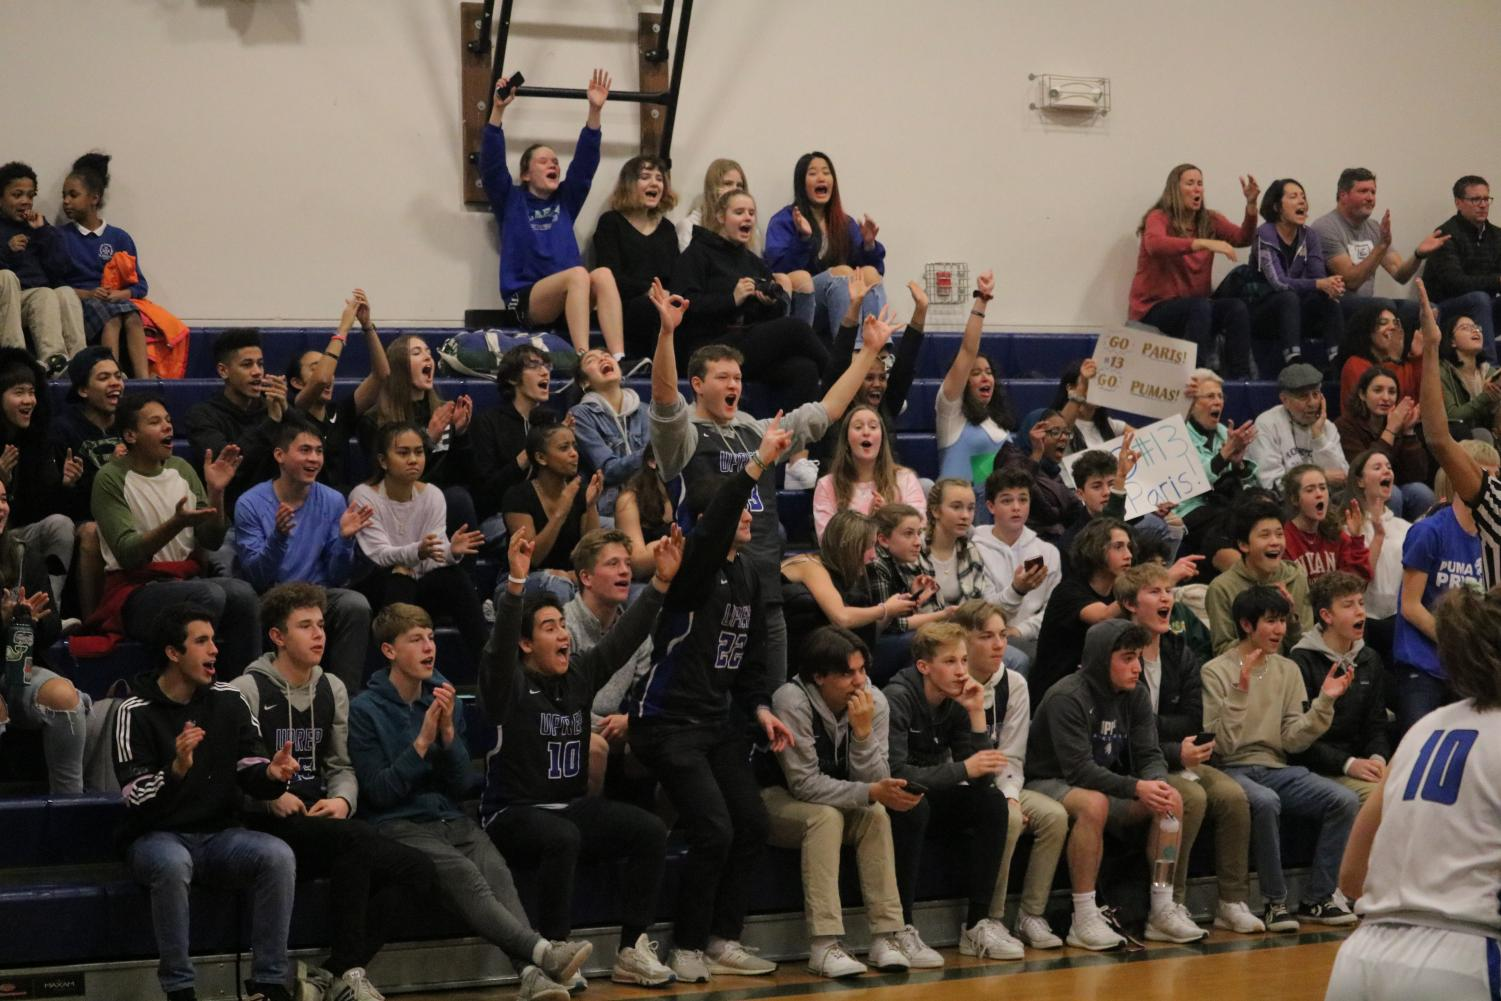 UPrep students celebrate while watching the varsity girls basketball game against Cedar Park. Over the past year, student attendance at sports games has gone up.